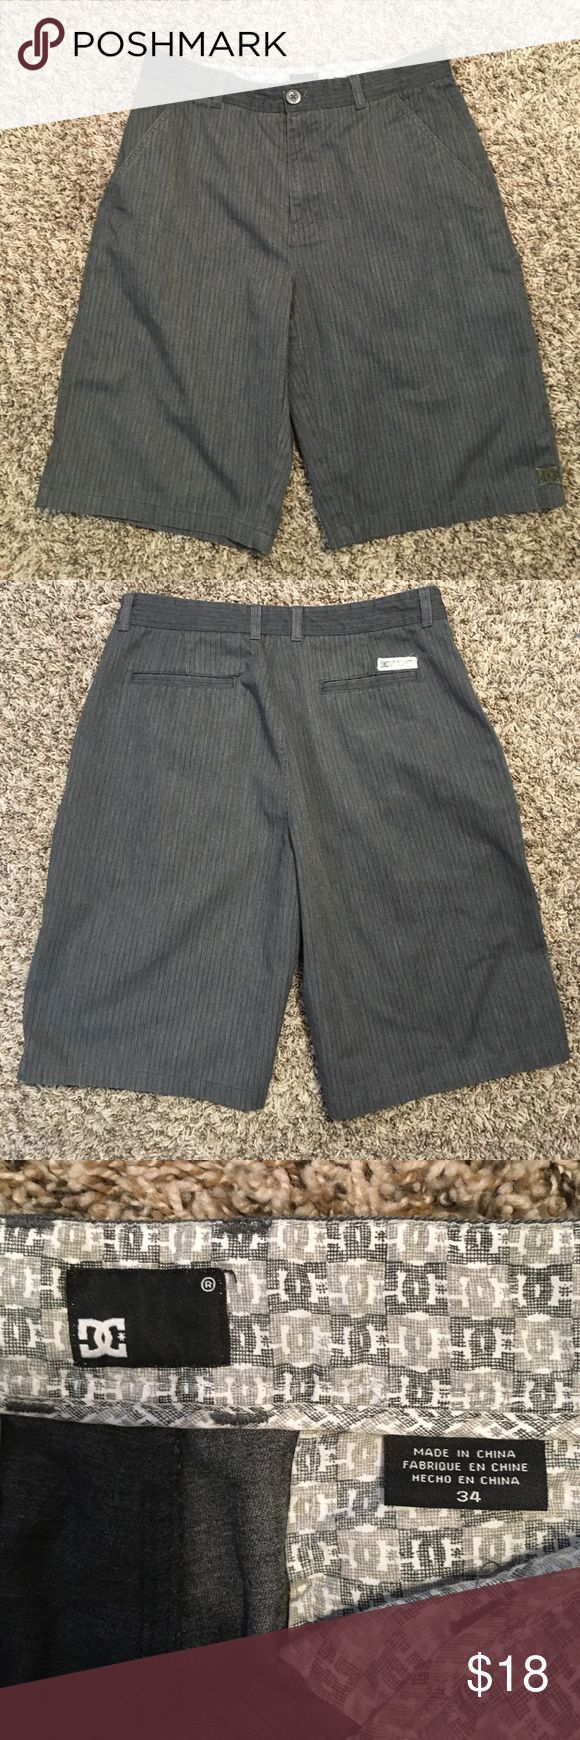 "DC Skate Shorts Men's size 34 DC Skate Shorts. Zipper Fly with Button Closure. Inseam measures 11"". Gray pinstriped.  Great preowned condition. Any questions please ask. Thank You 😊 DC Shorts Flat Front"